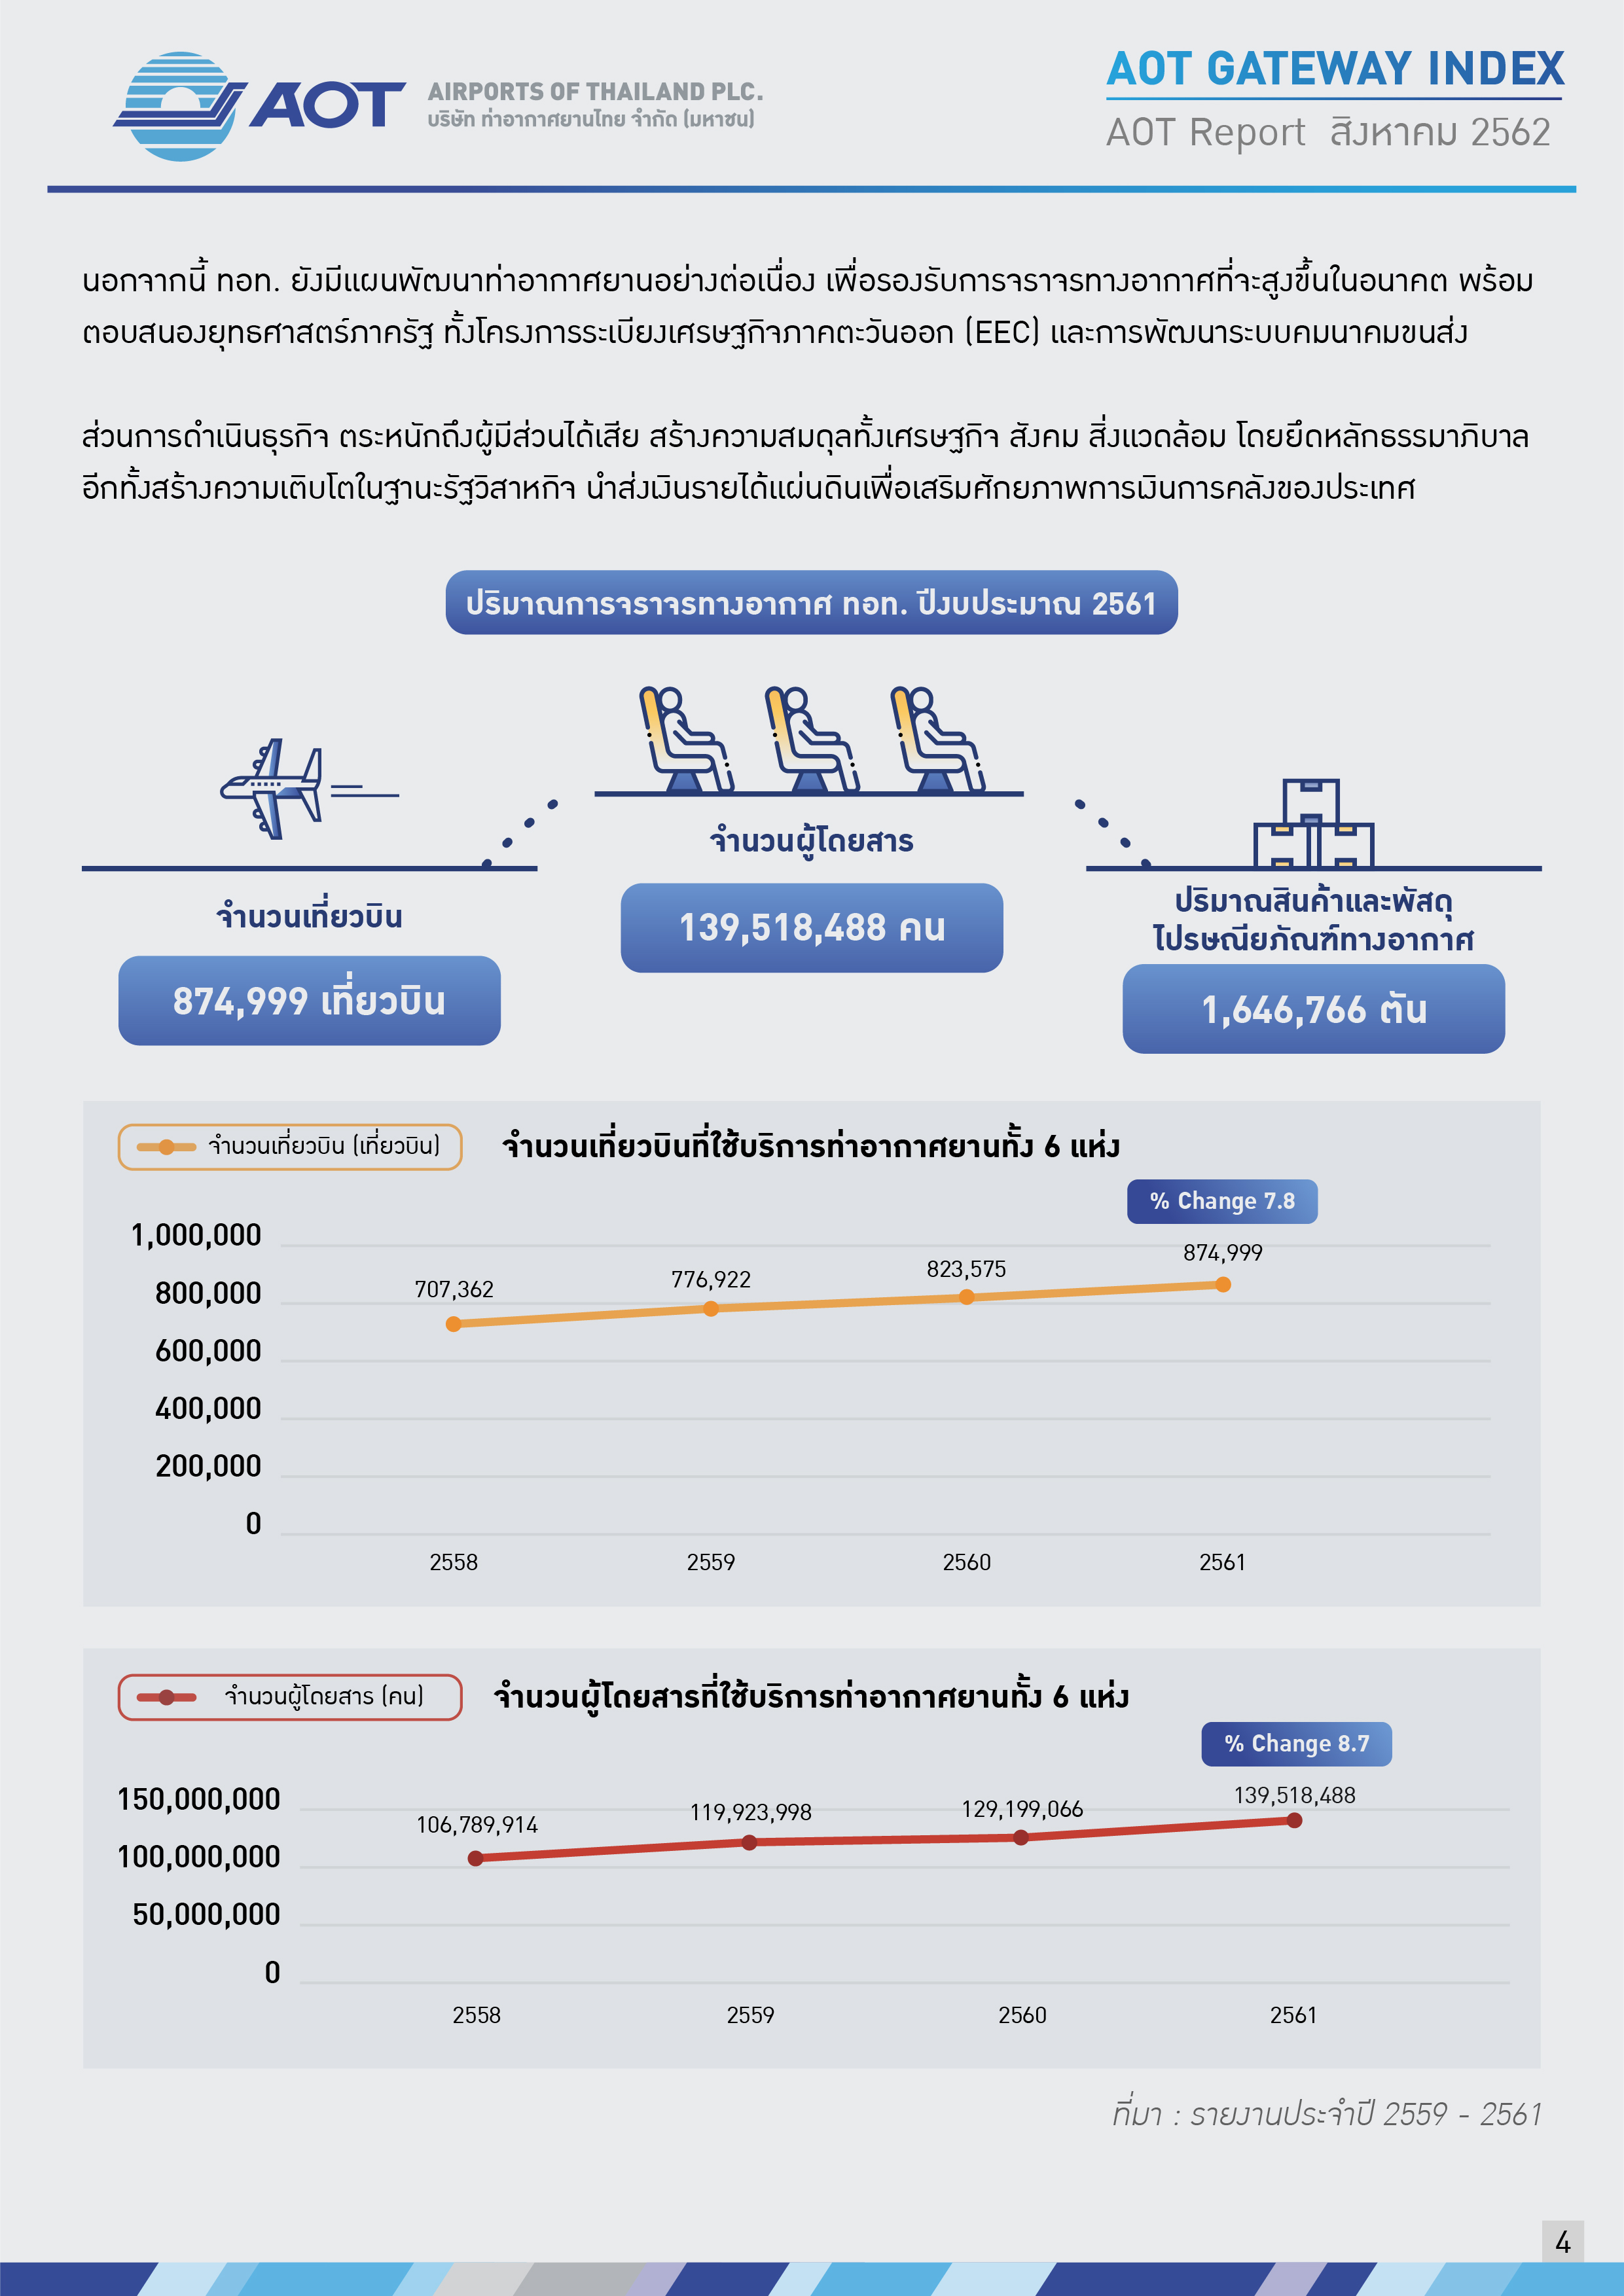 AOTcentent2019_Index 09_AOT เคียงคู่สังคม_V7_20191031_Page04